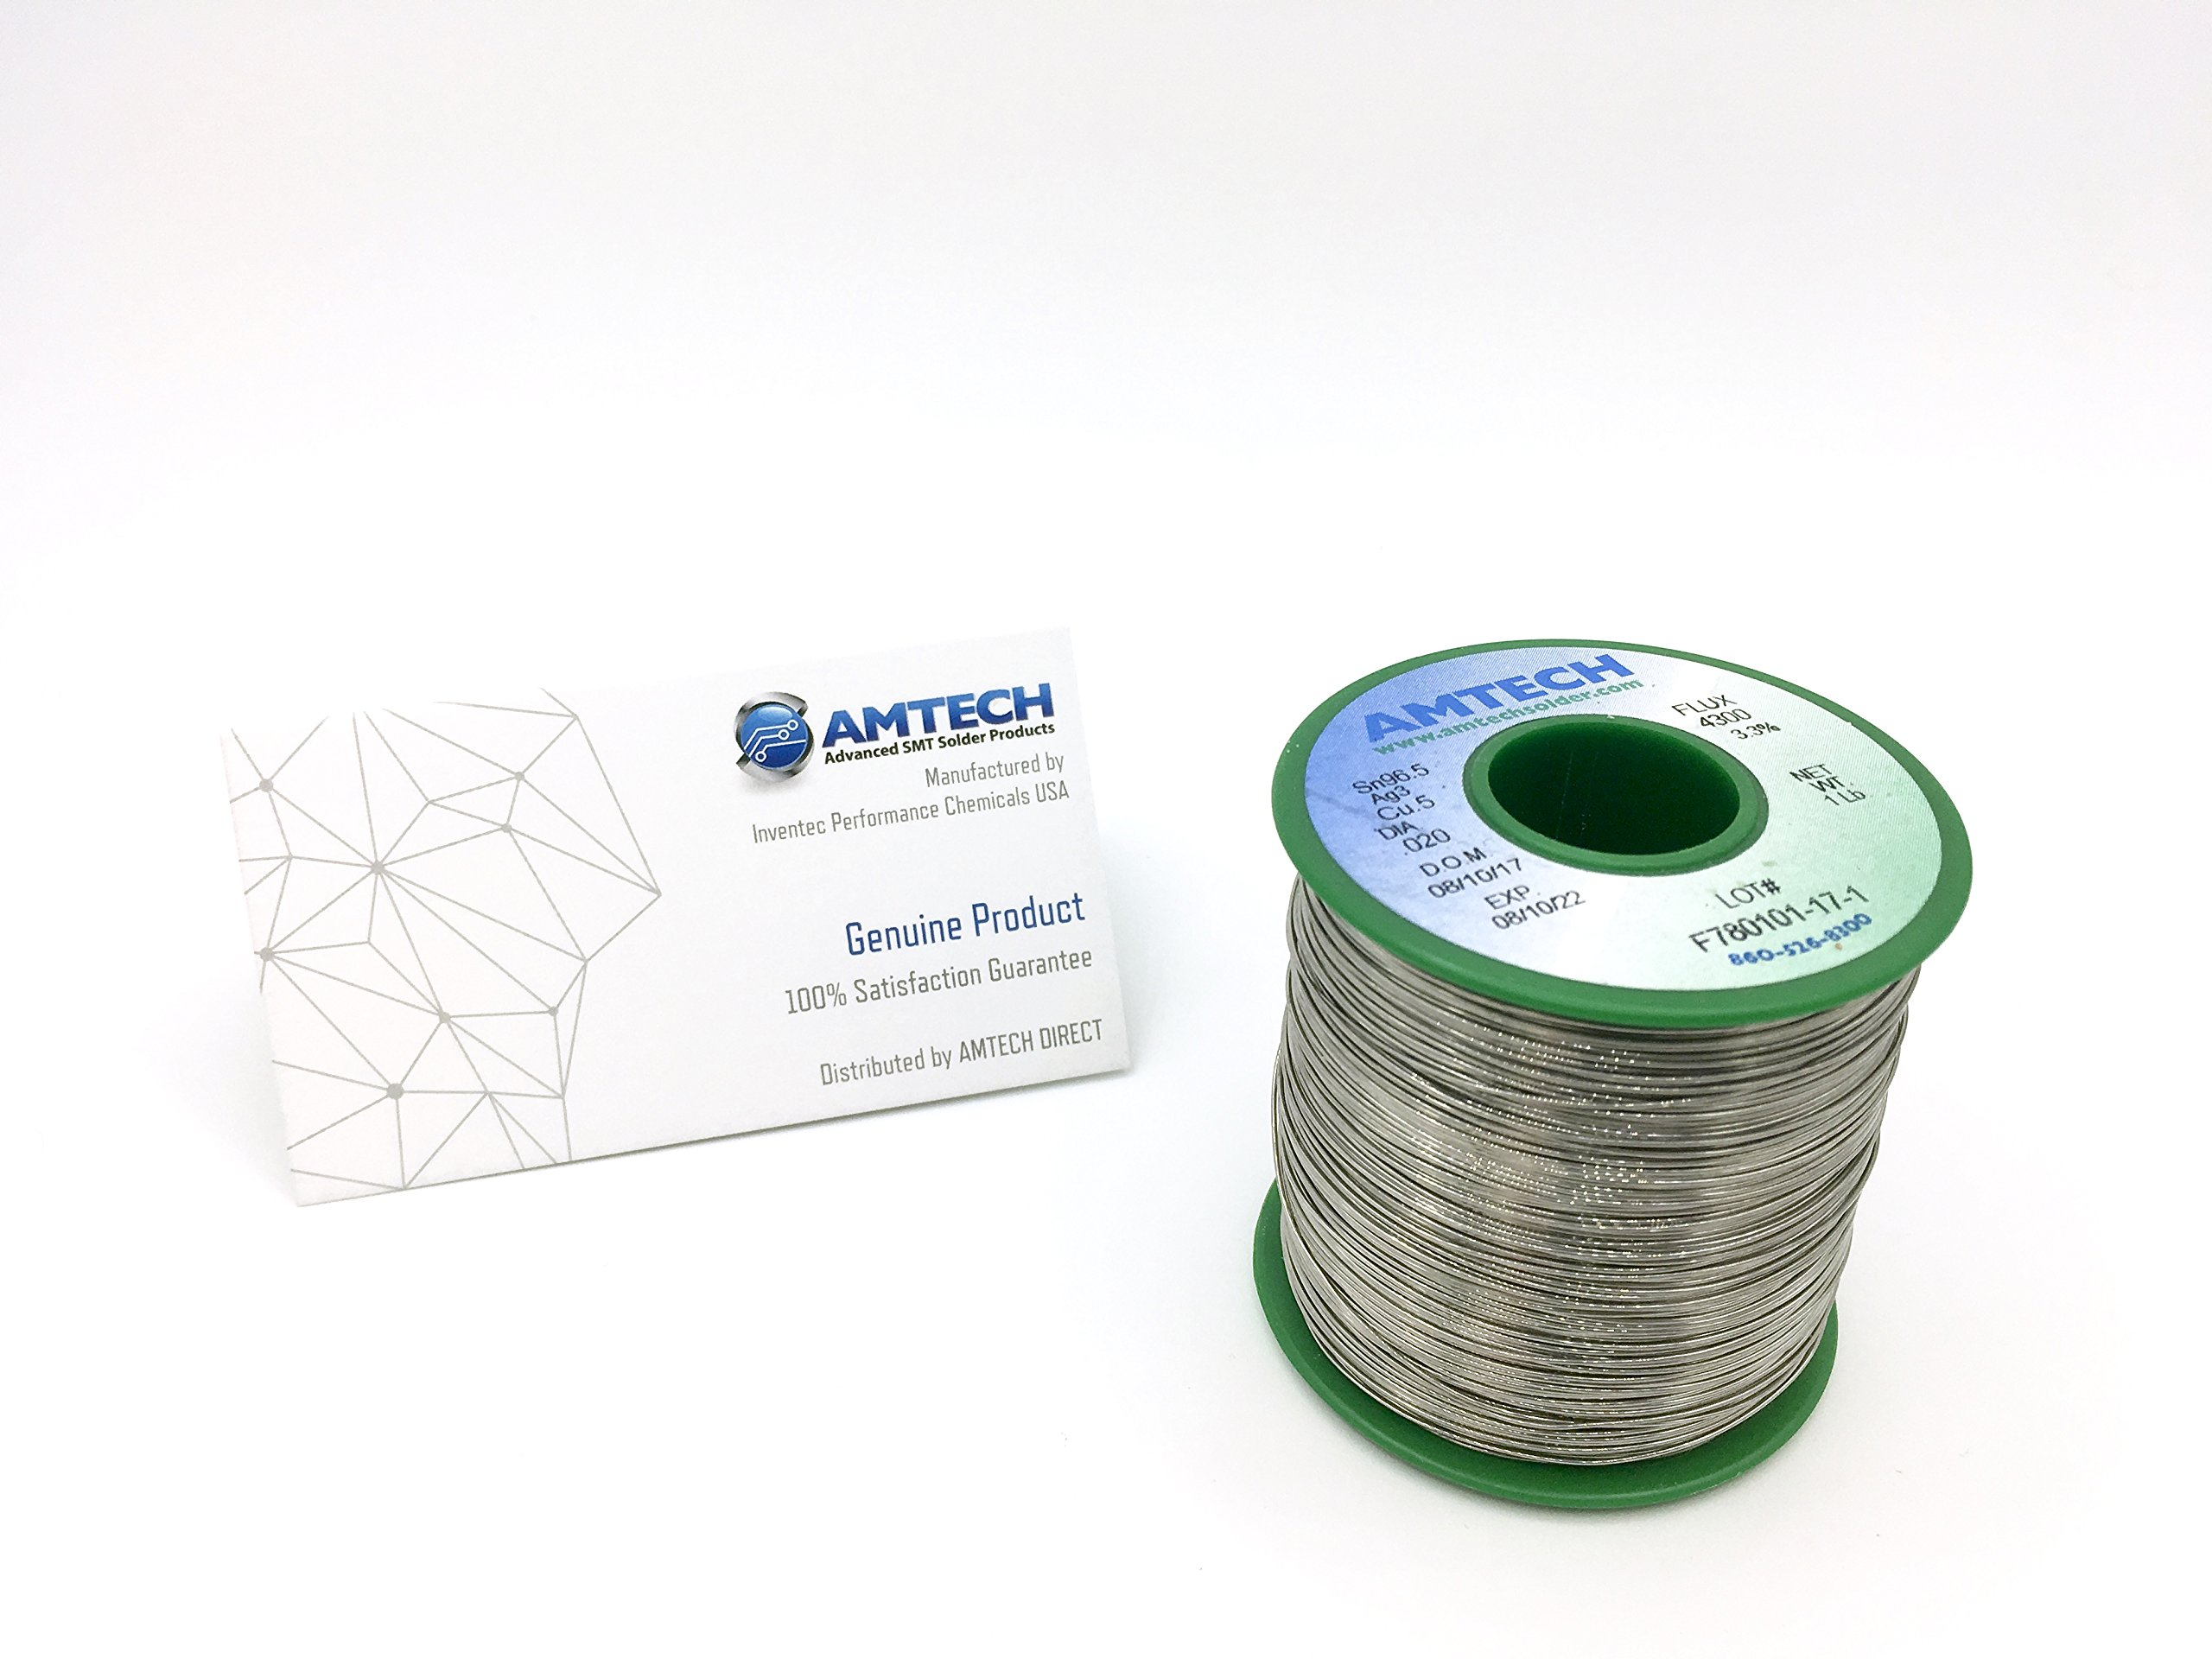 AMTECH SAC305 3.3% LF-4300 Resin Core Lead-free Water Washable Solder Wire (0.031'')